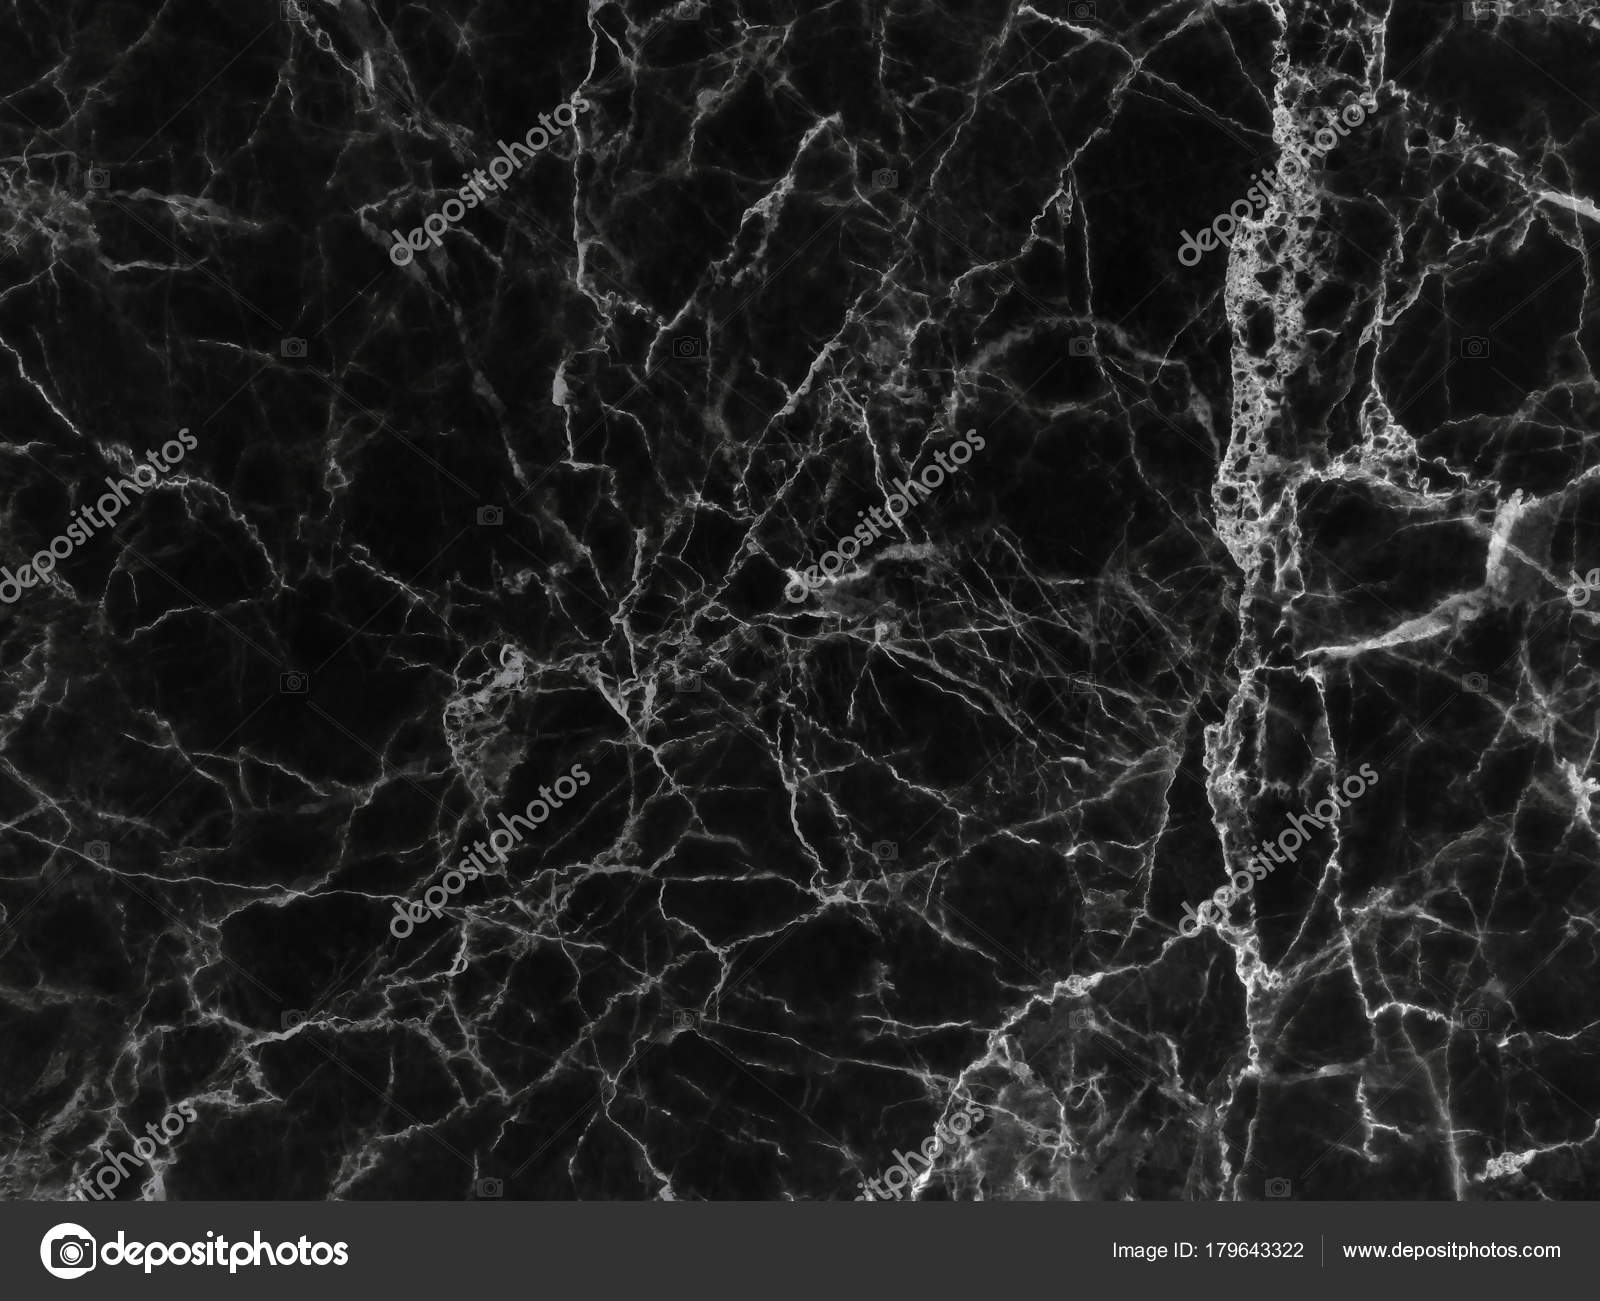 Black marble texture Large Black Marble Texture And Background For Design Pattern Artwork Photo By Jpkirakun Depositphotos Black Marble Texture And Background Stock Photo Jpkirakun 179643322